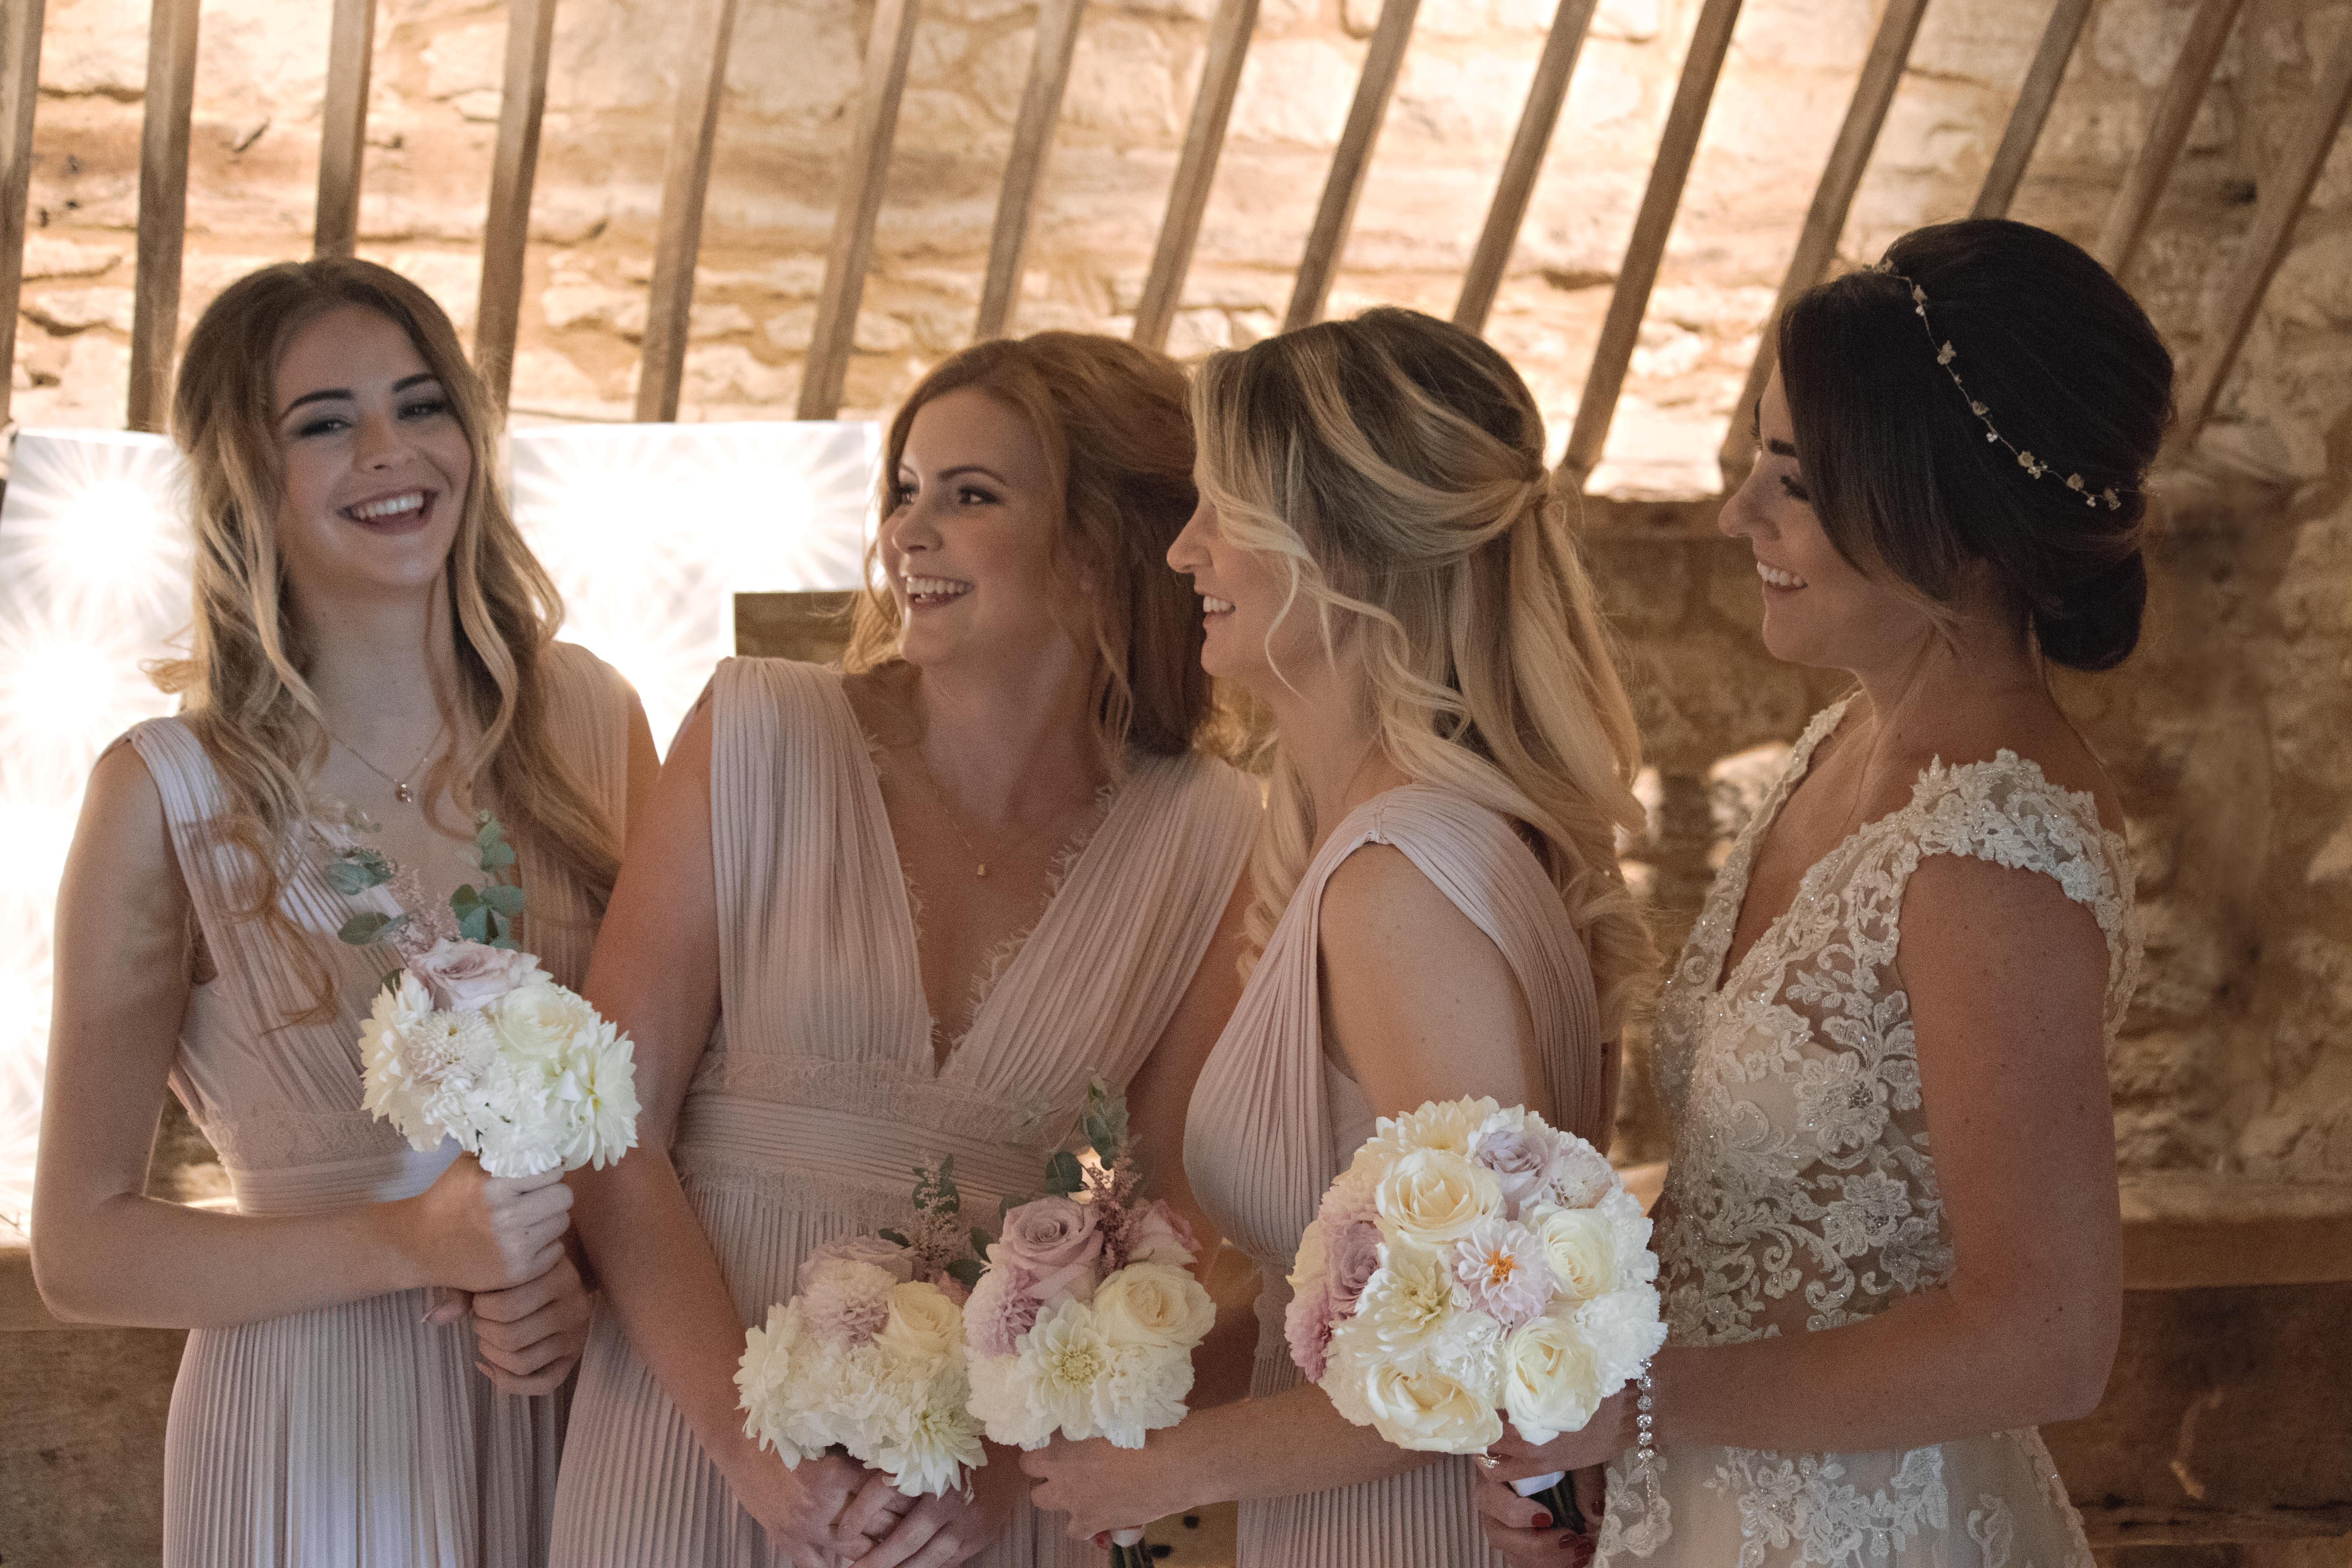 Candid Shots of Bride and Bridesmaids